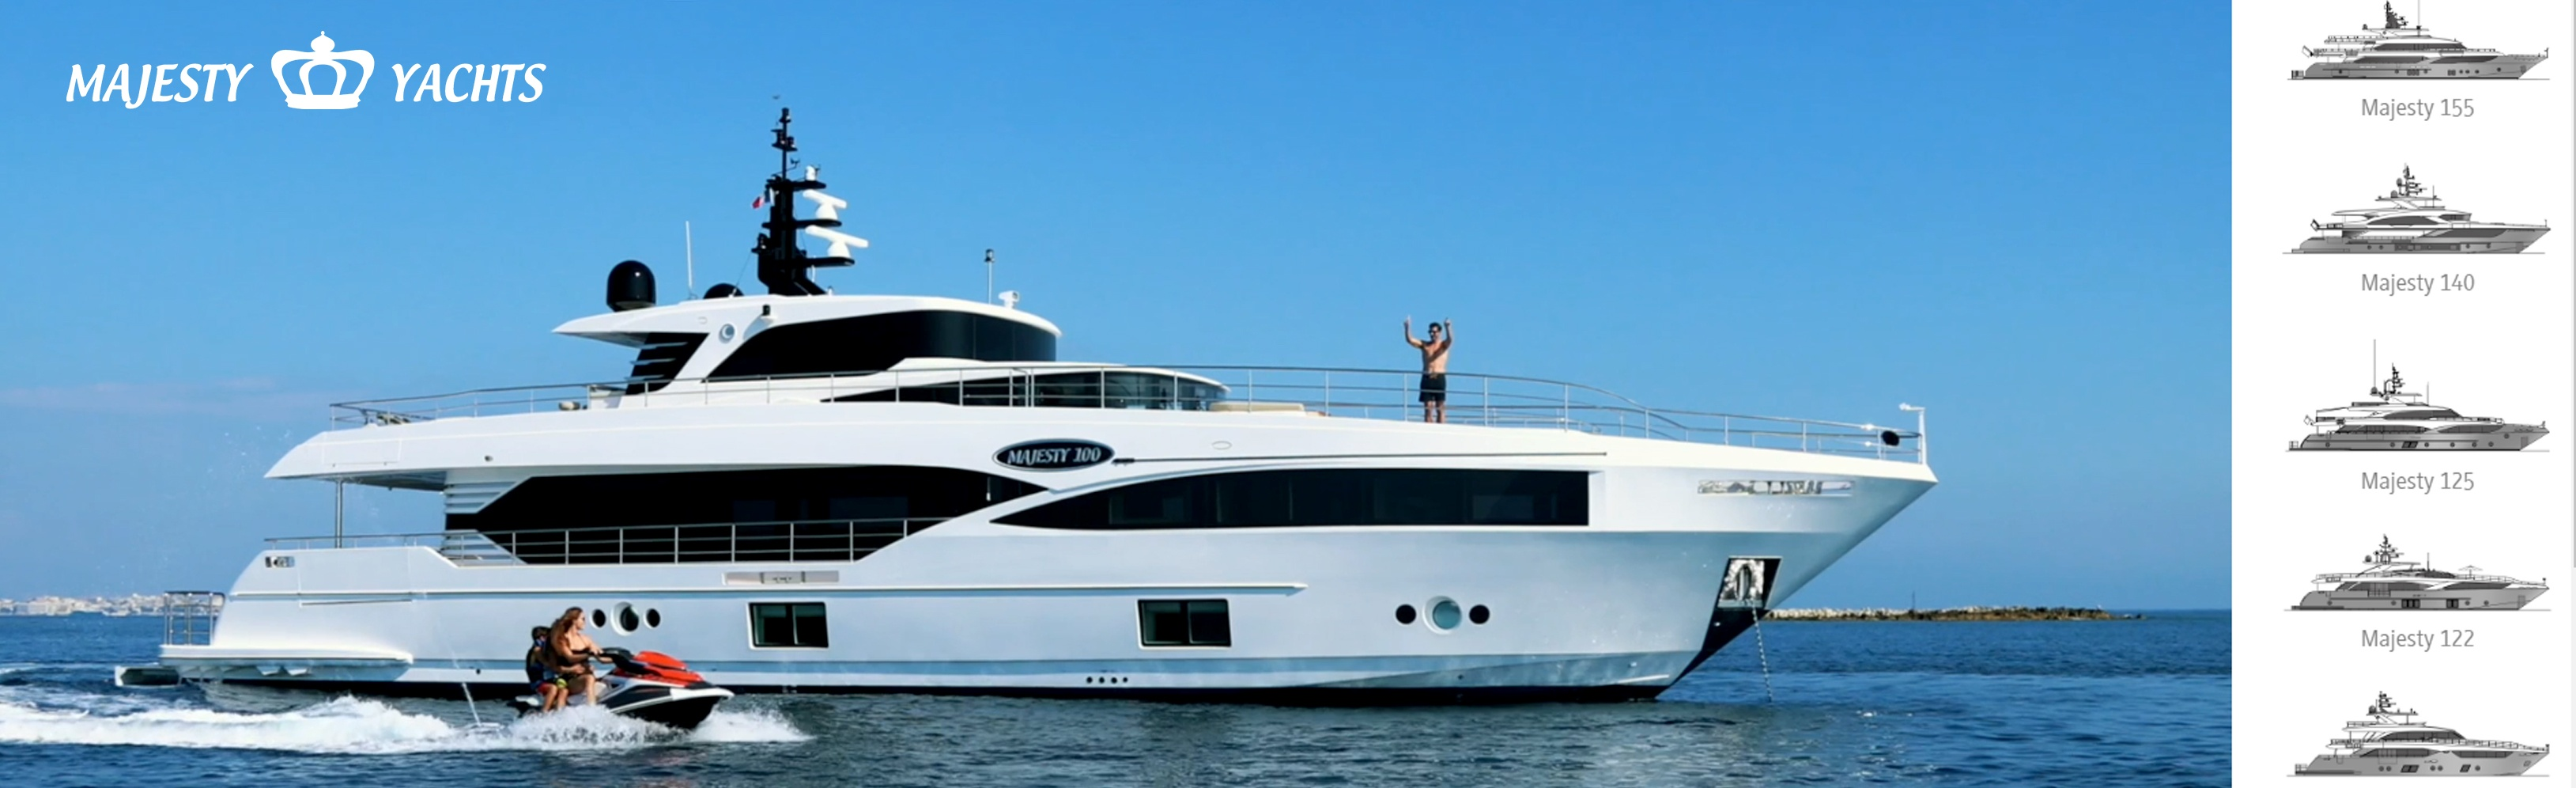 Majesty-Yachts-website